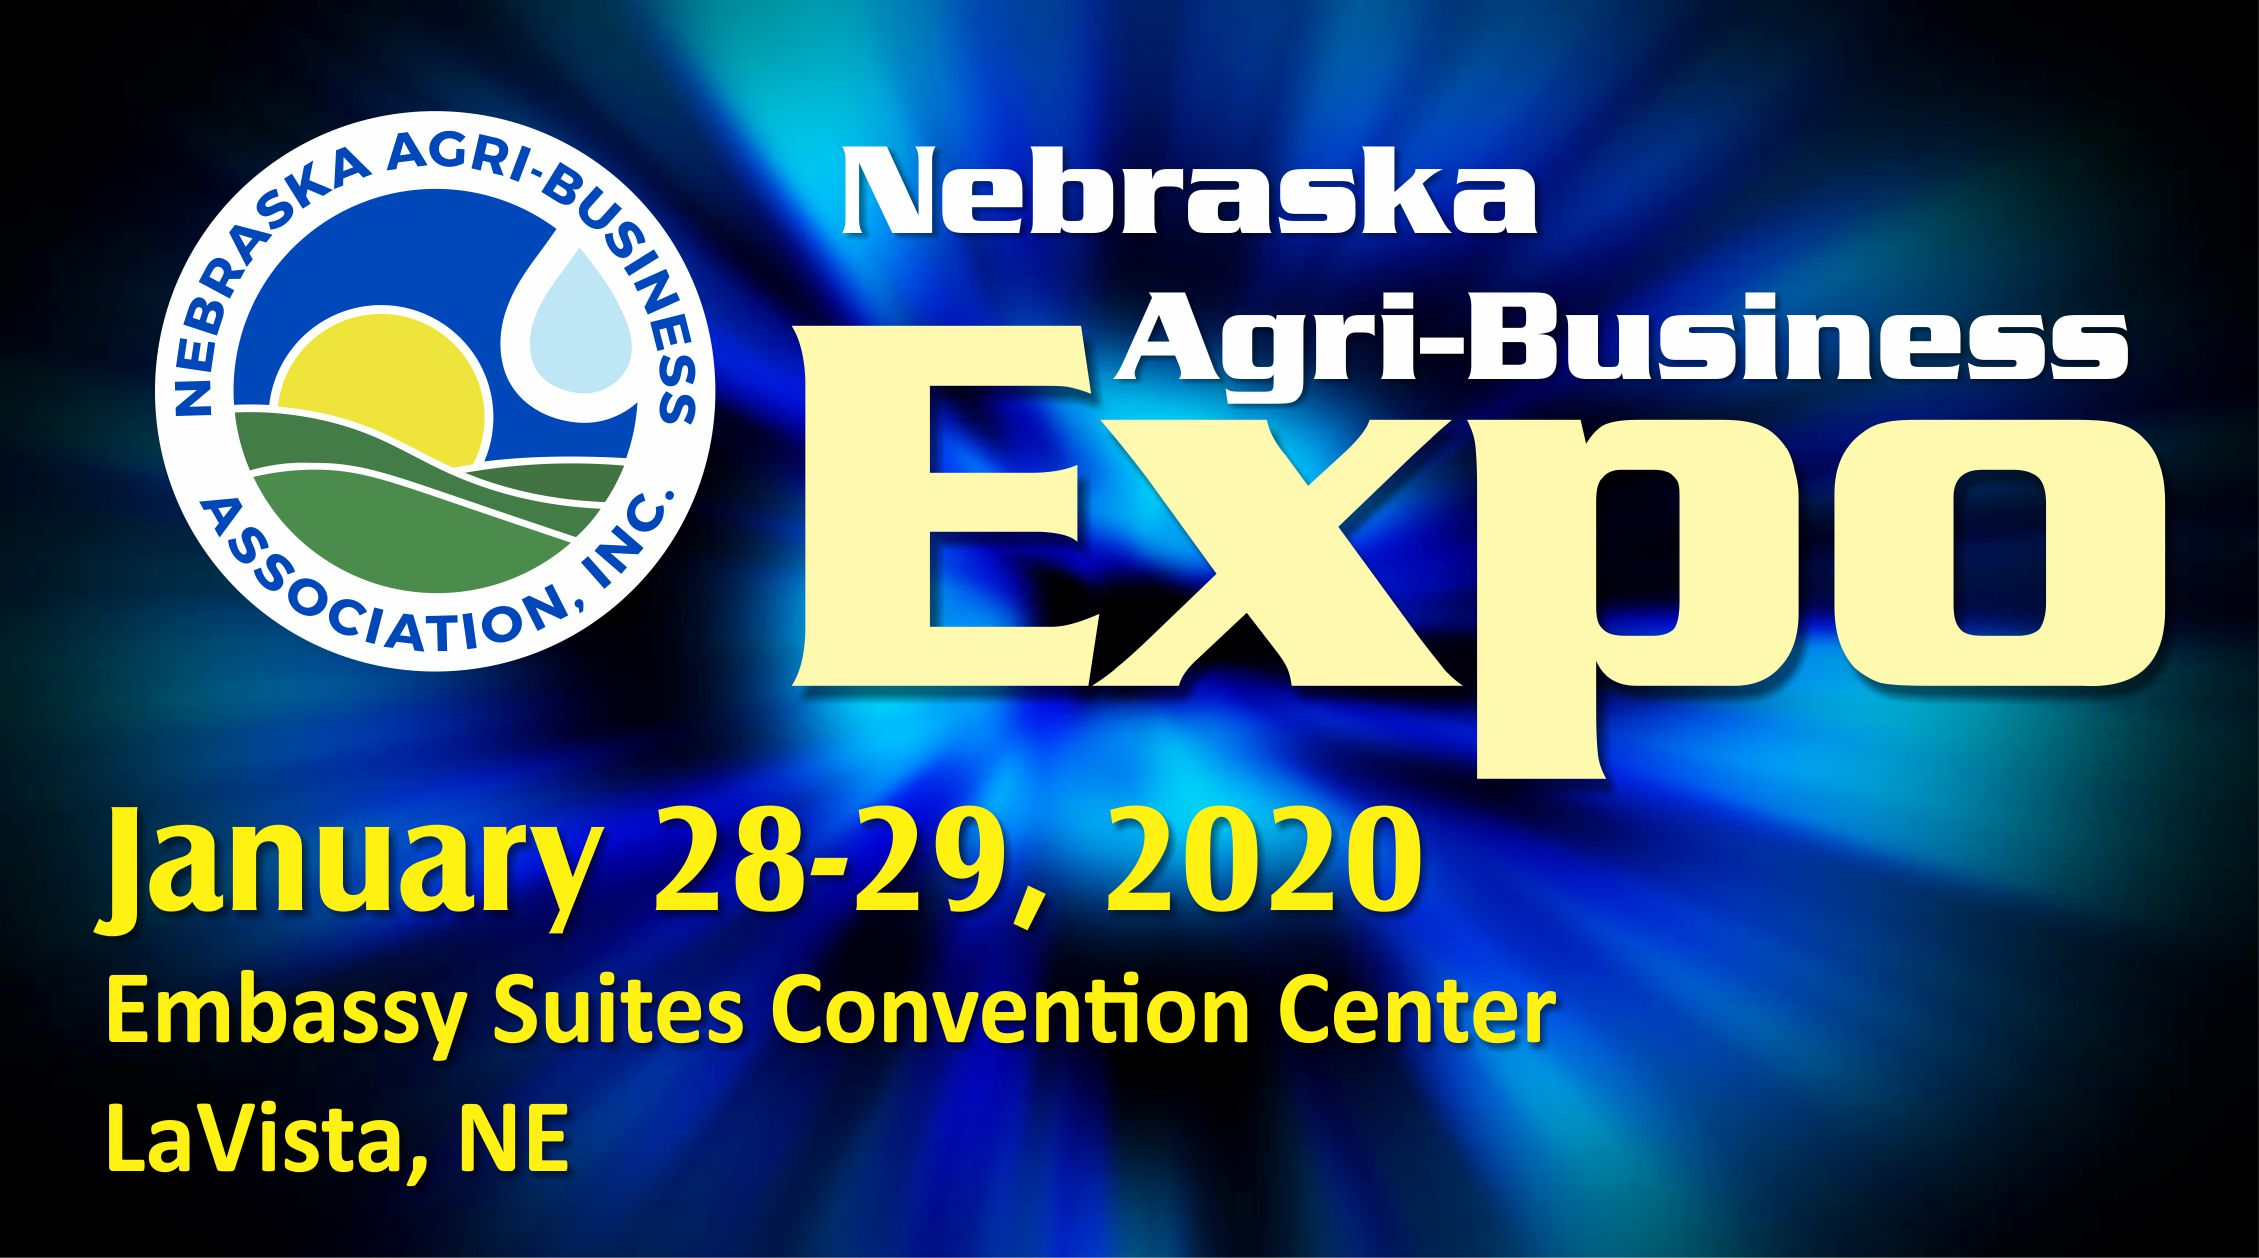 Exhibitor List | Nebraska Agri-Business Association, Inc